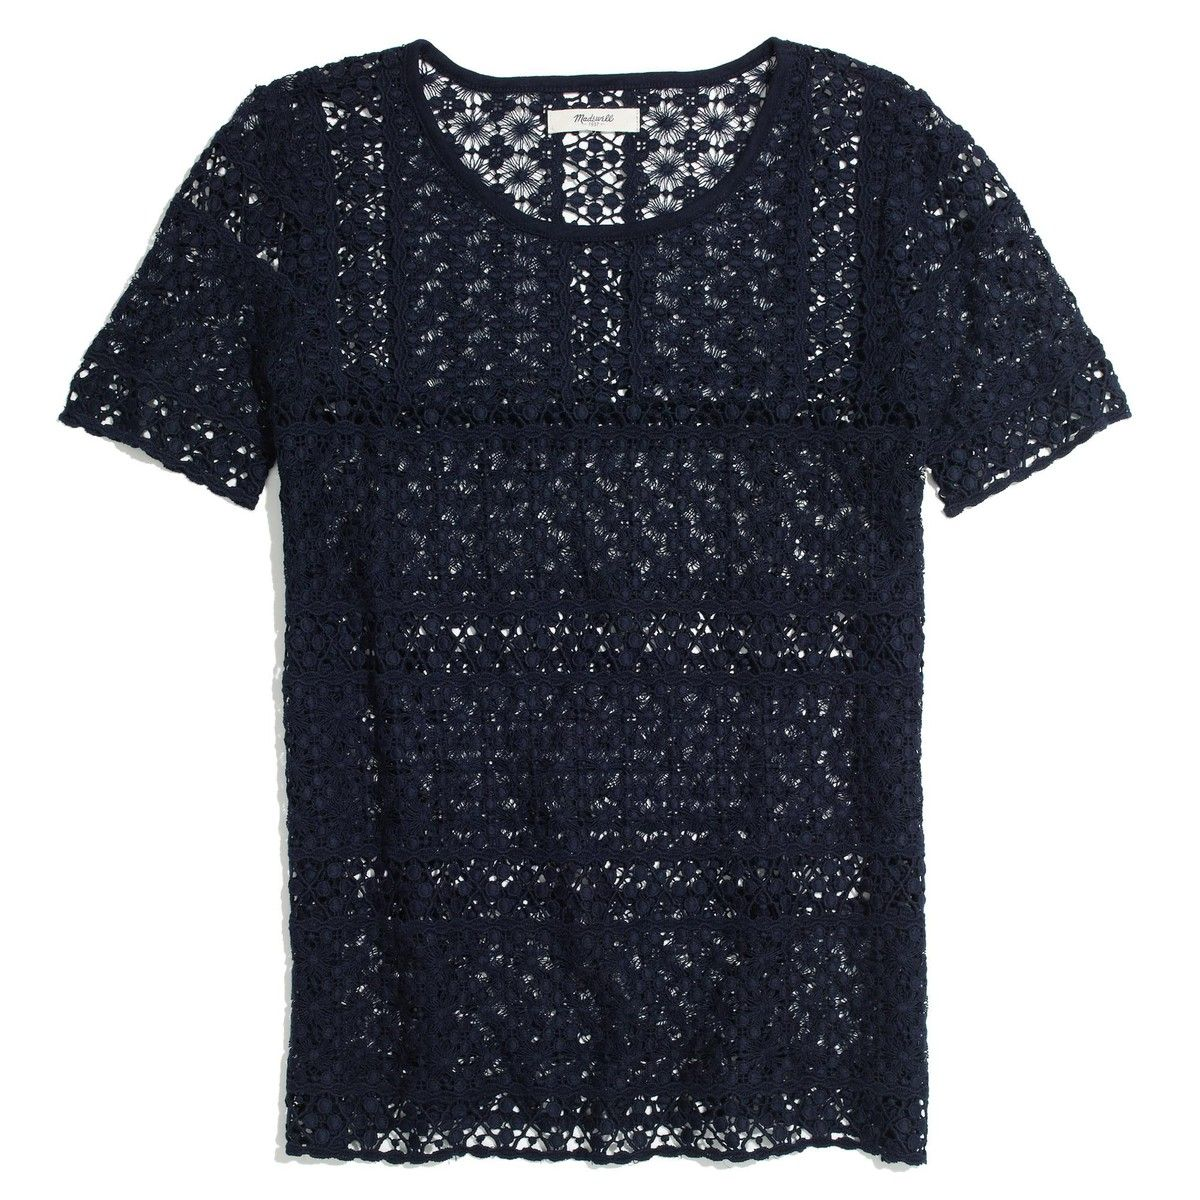 Madewell Crochet Mix Top